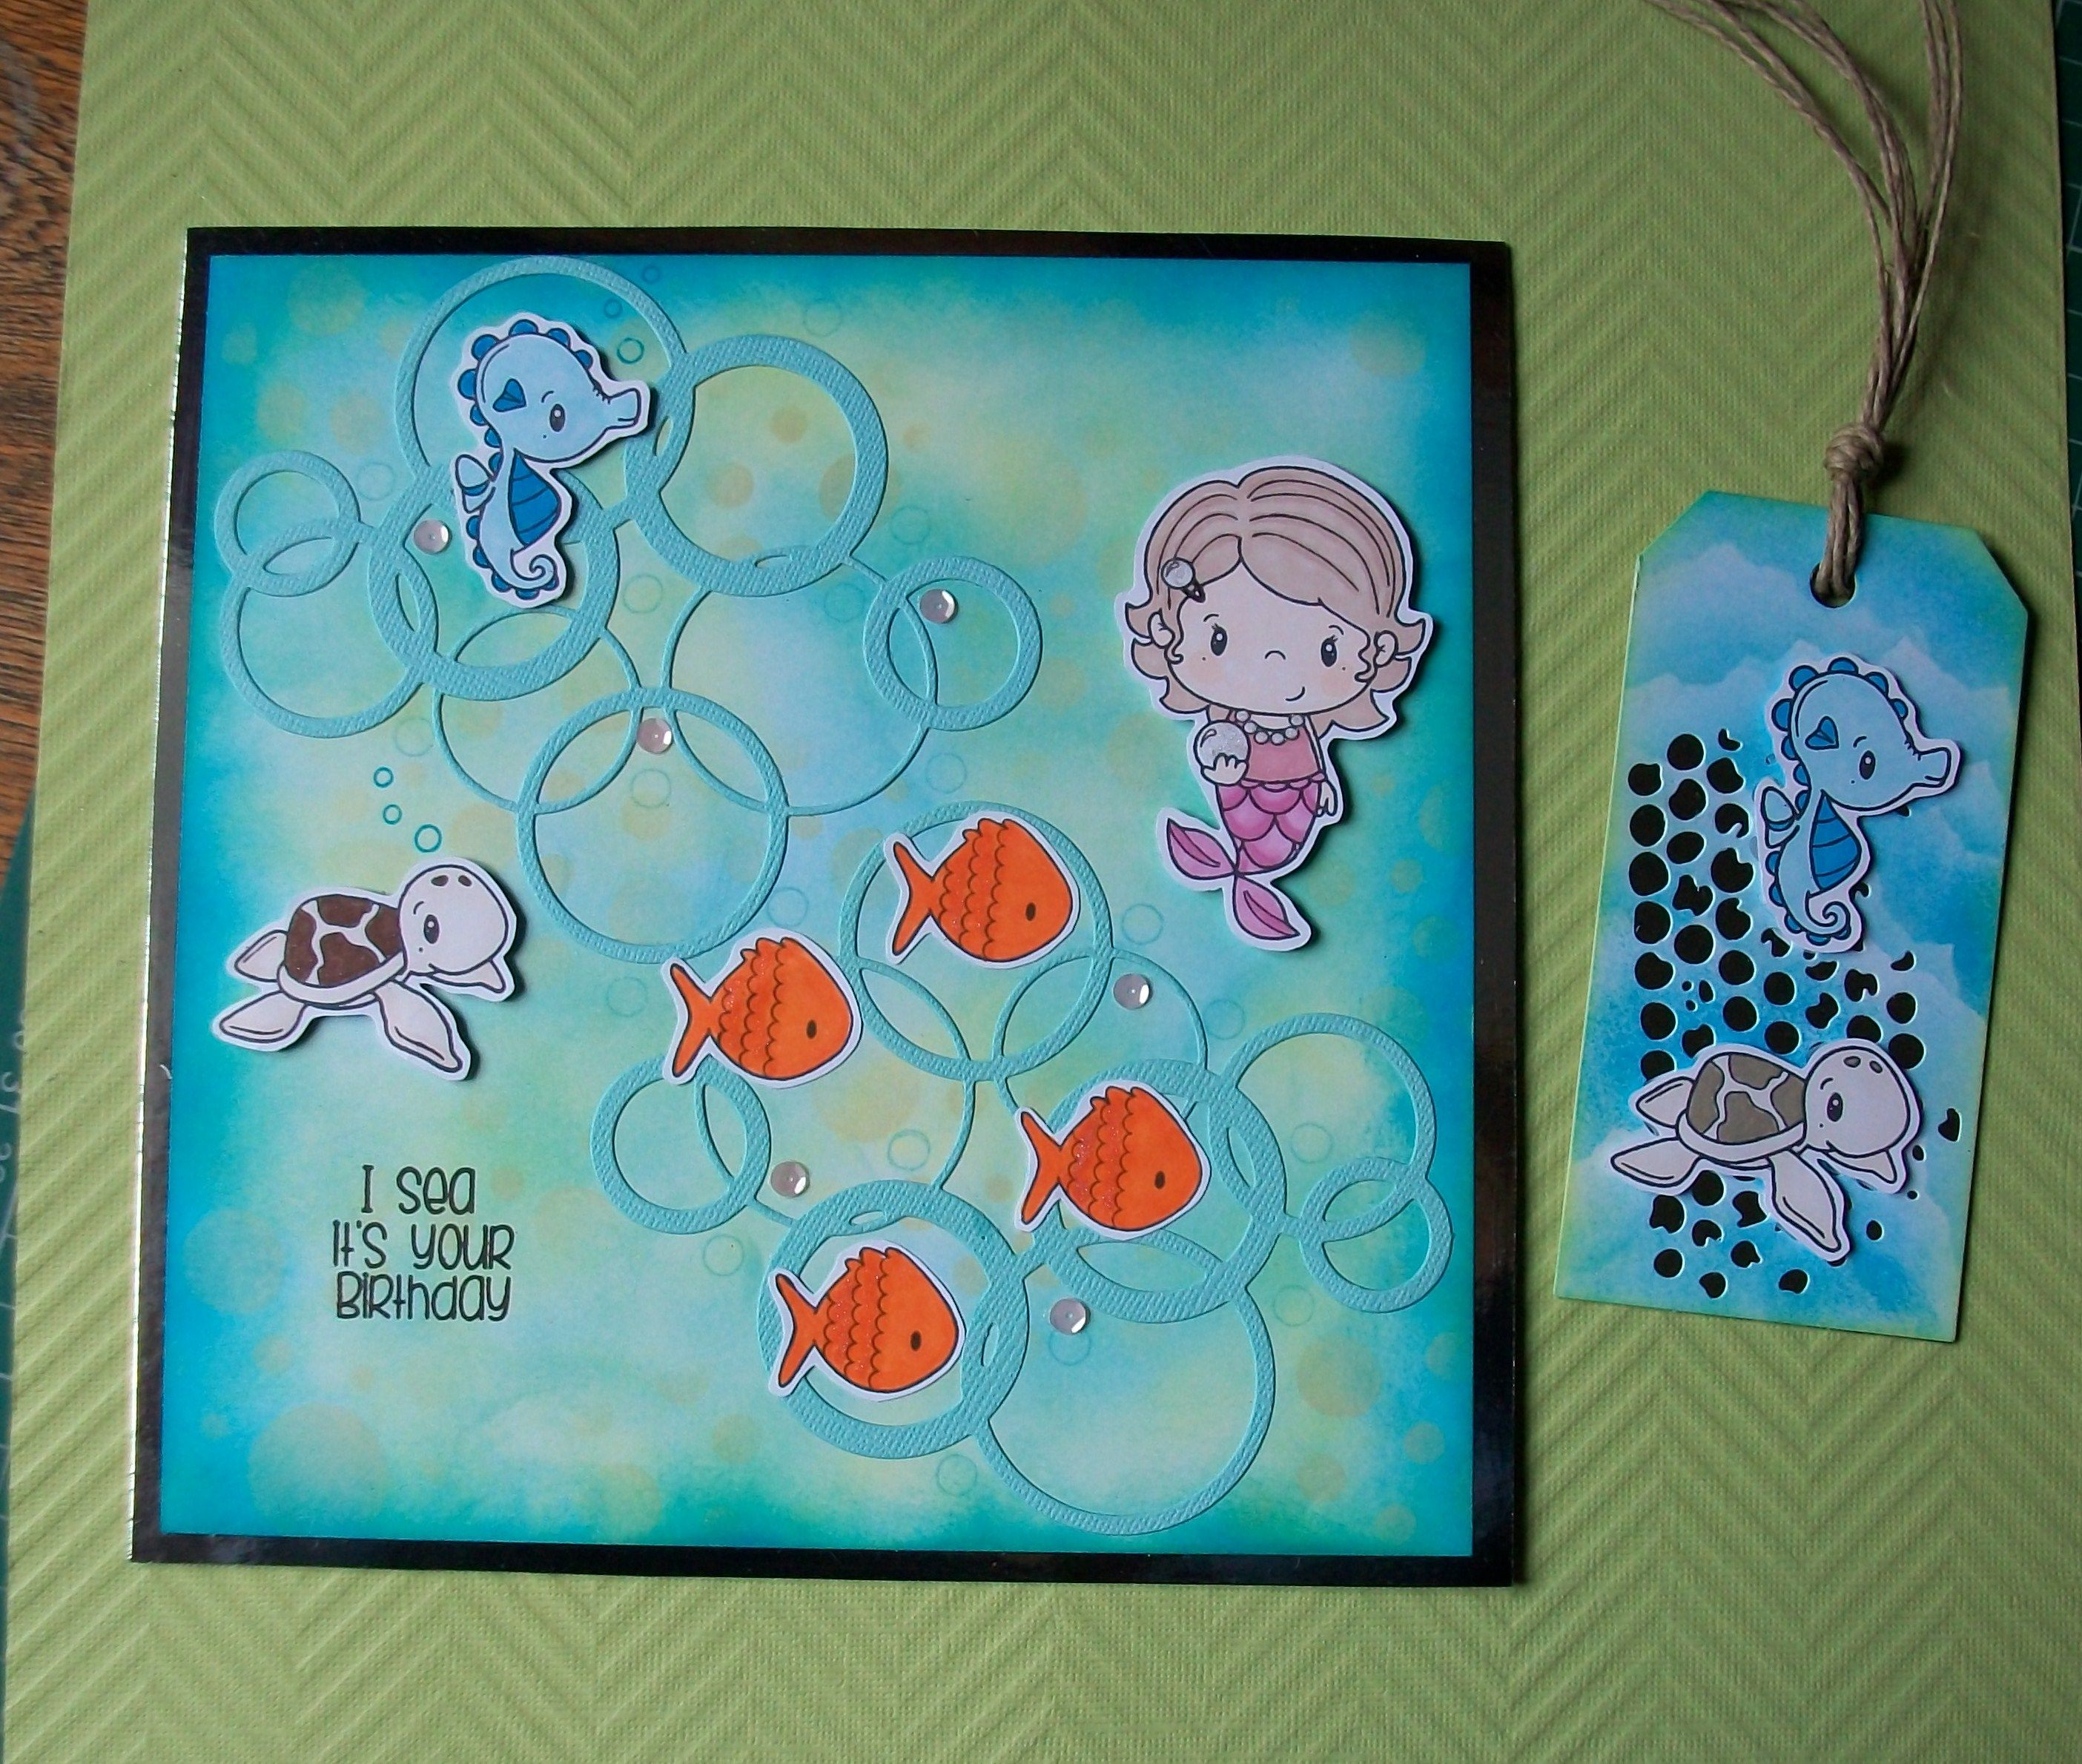 Under the sea little pixie cc designs my cards